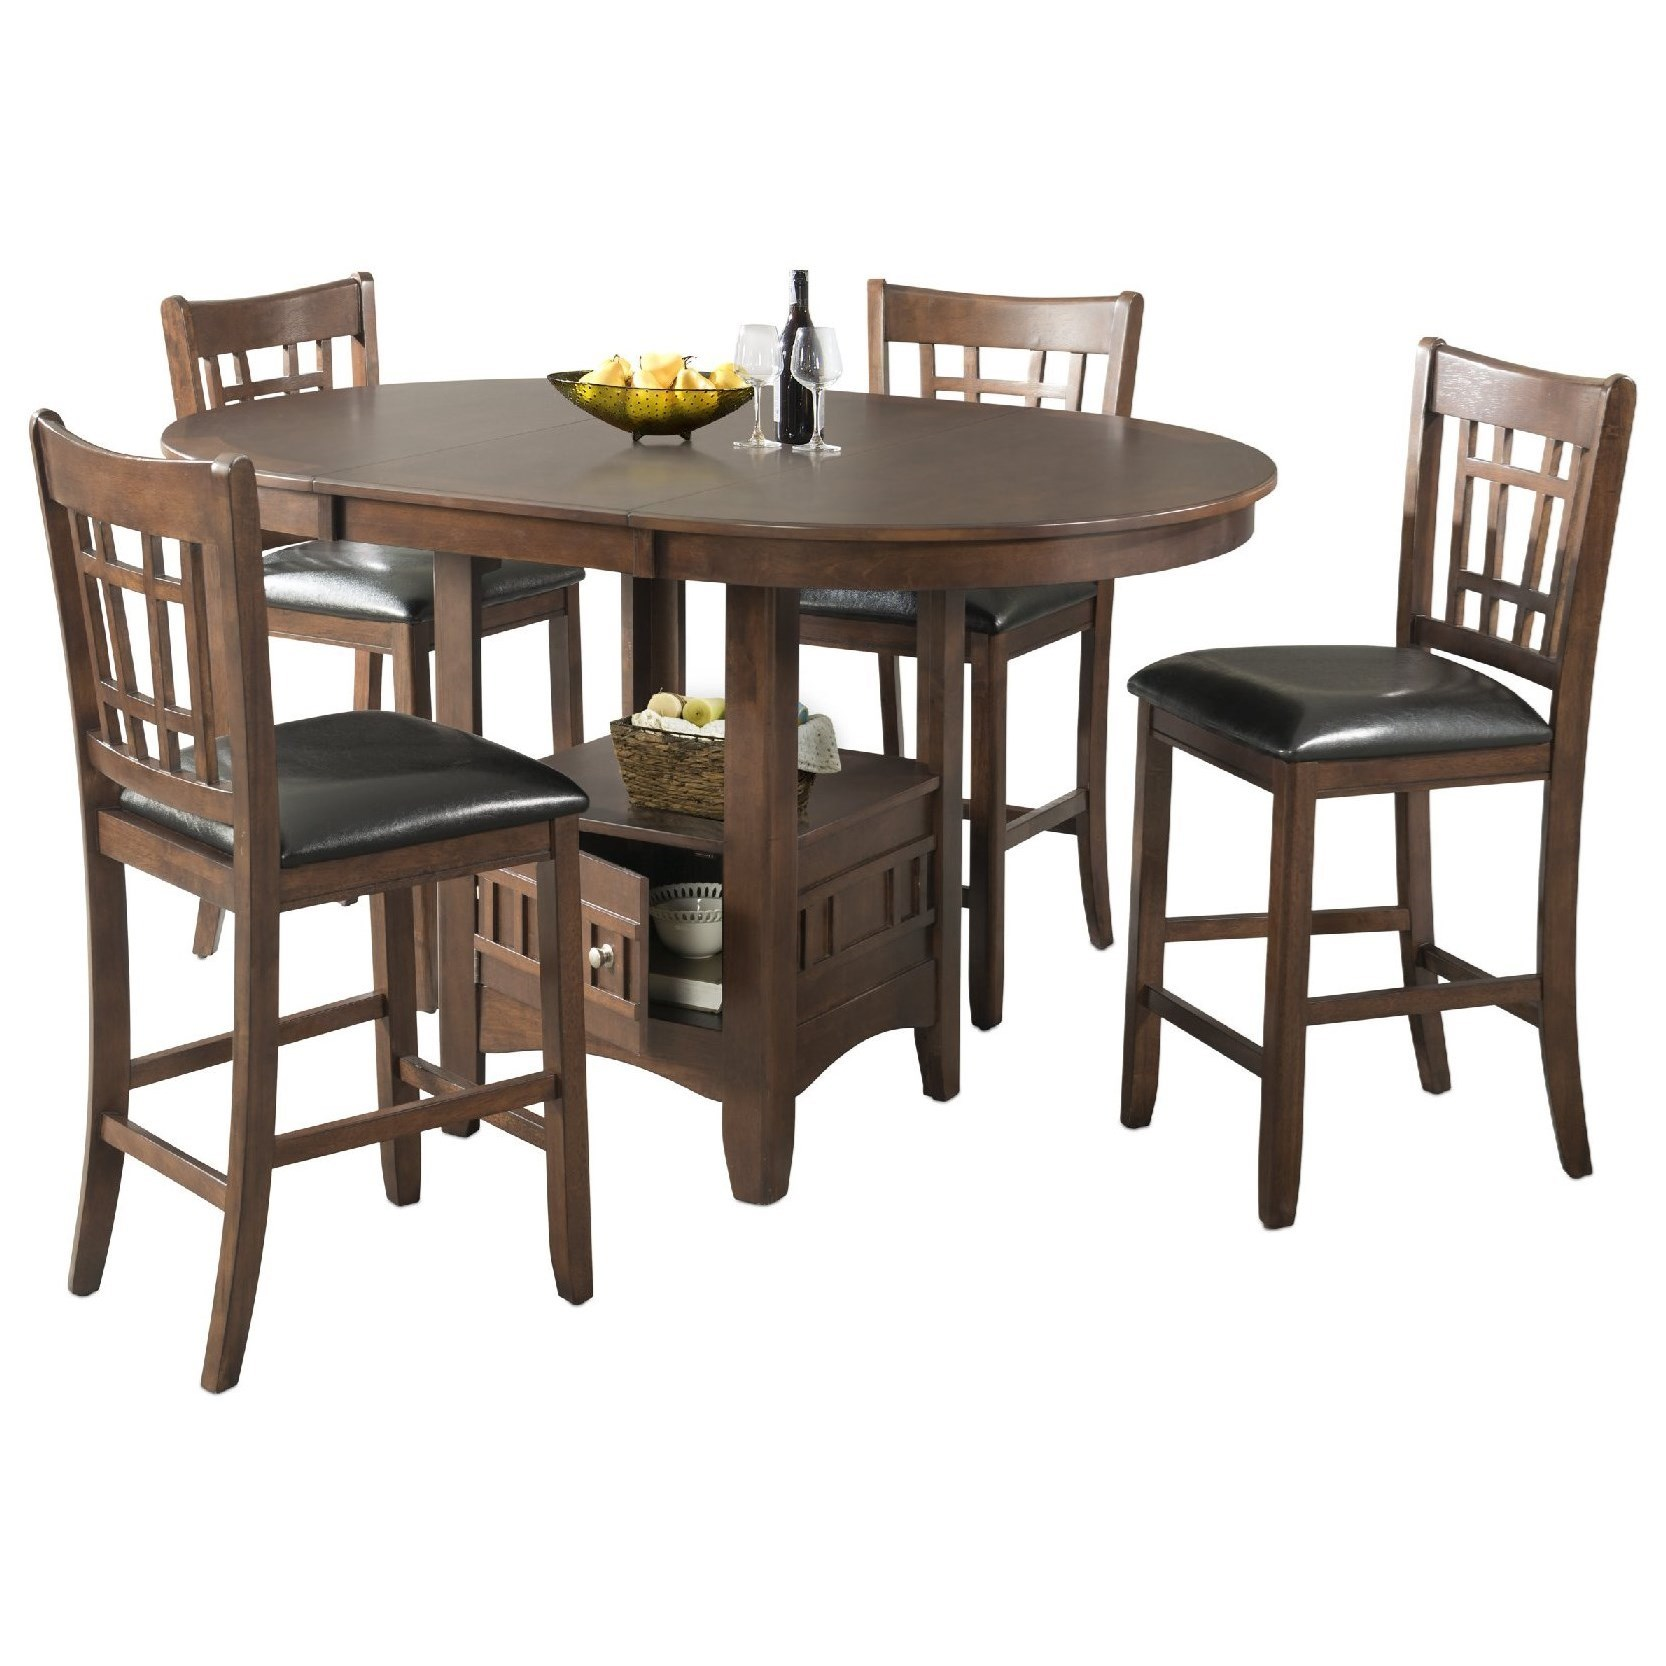 Bar Table With Chairs Max Casual Counter Height Table Set By Elements International At Miskelly Furniture